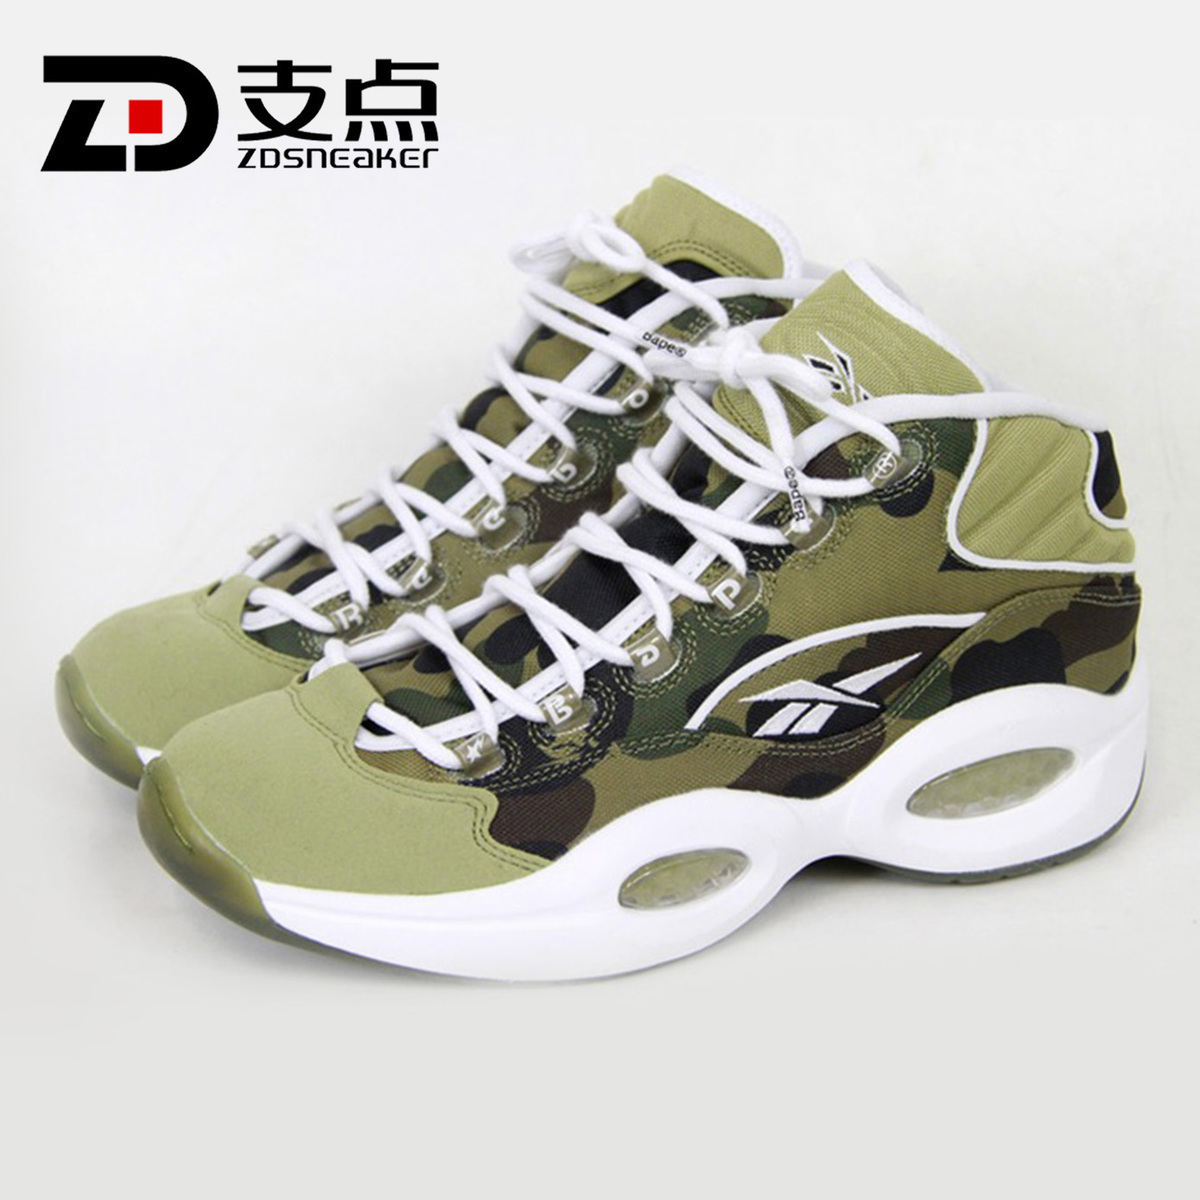 BAPE x Reebok Question 1 MID迷彩猿人限量艾佛森女篮球鞋BD4232